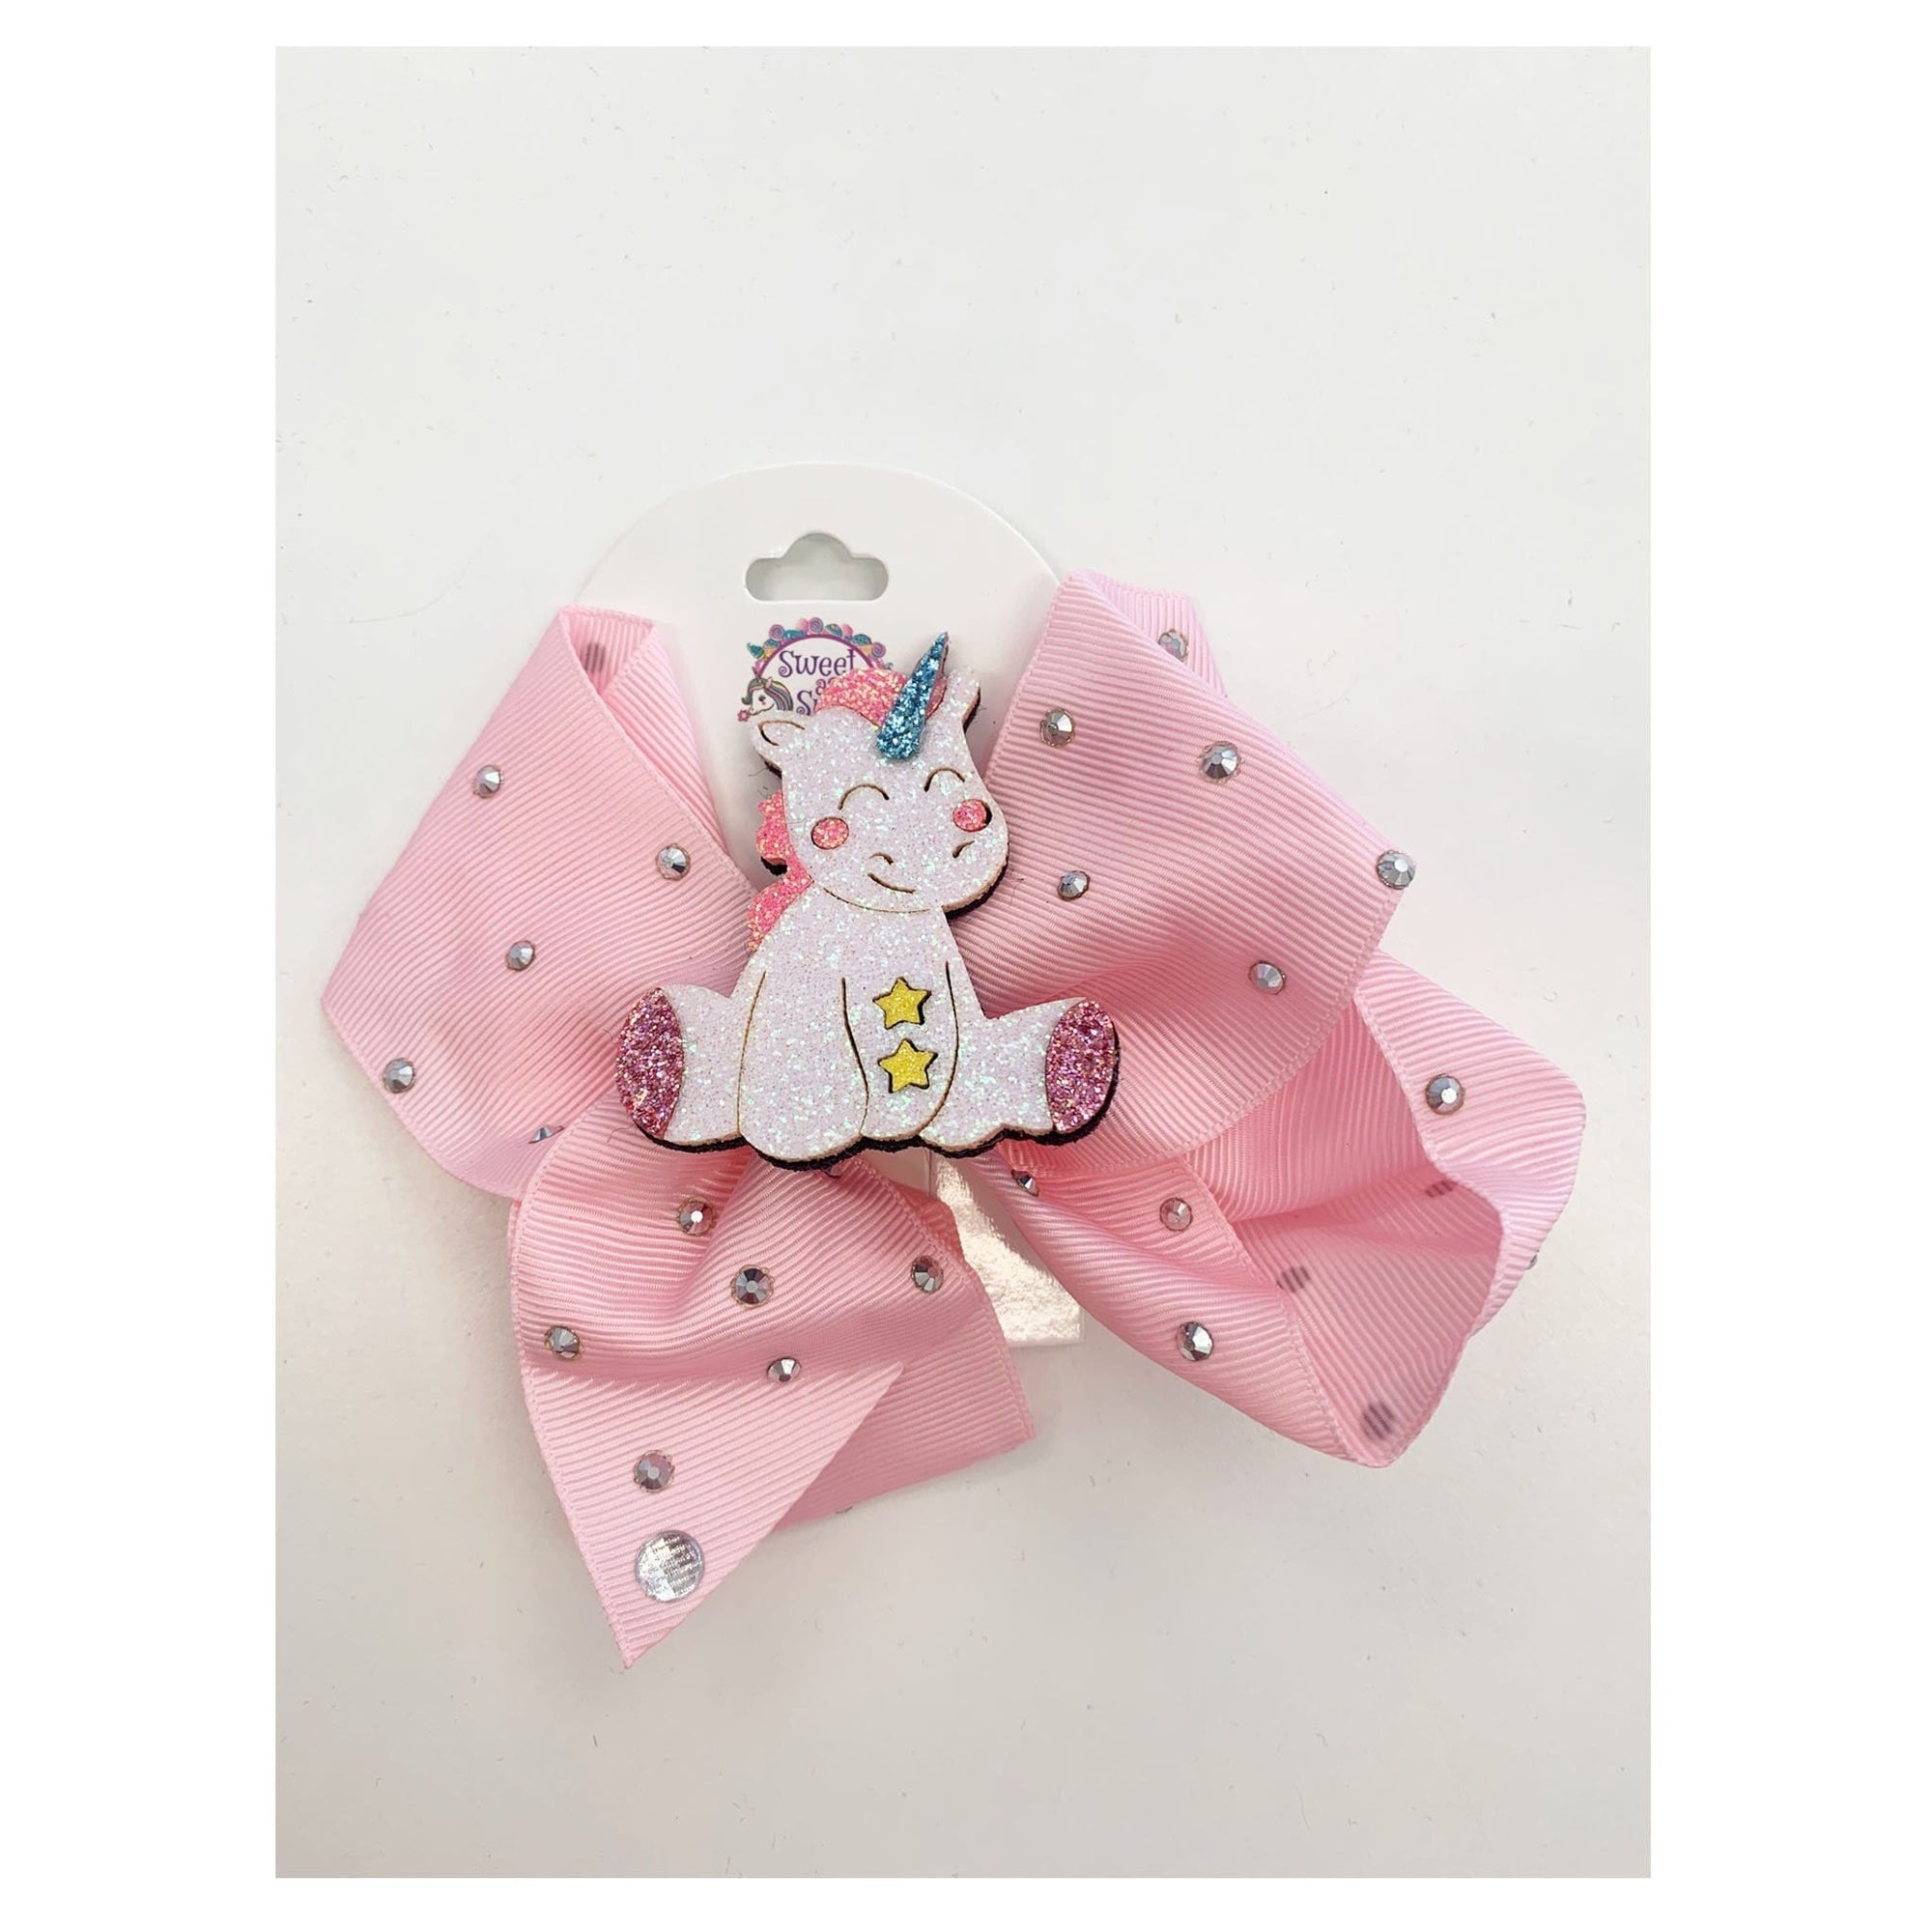 Sweet as Sugar Jellewery Unicorn Pink Hair Bow